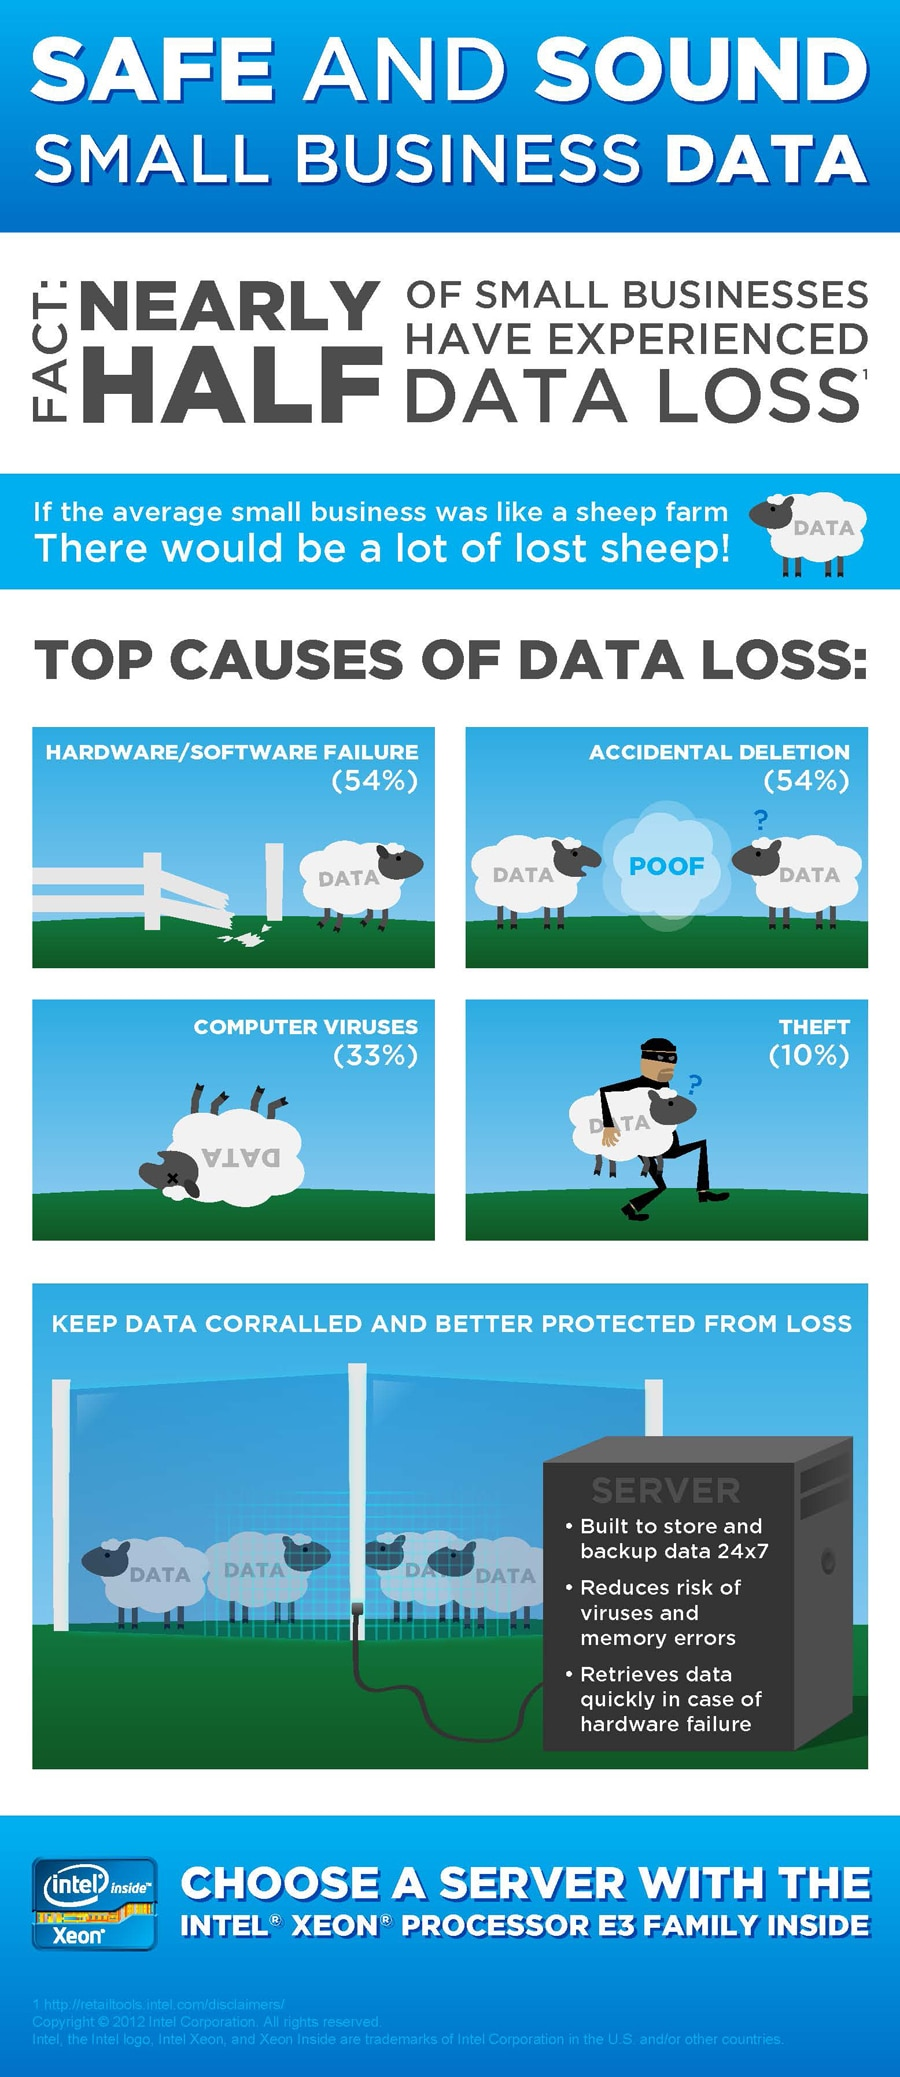 Safe and Sound Small Business Data Infographic